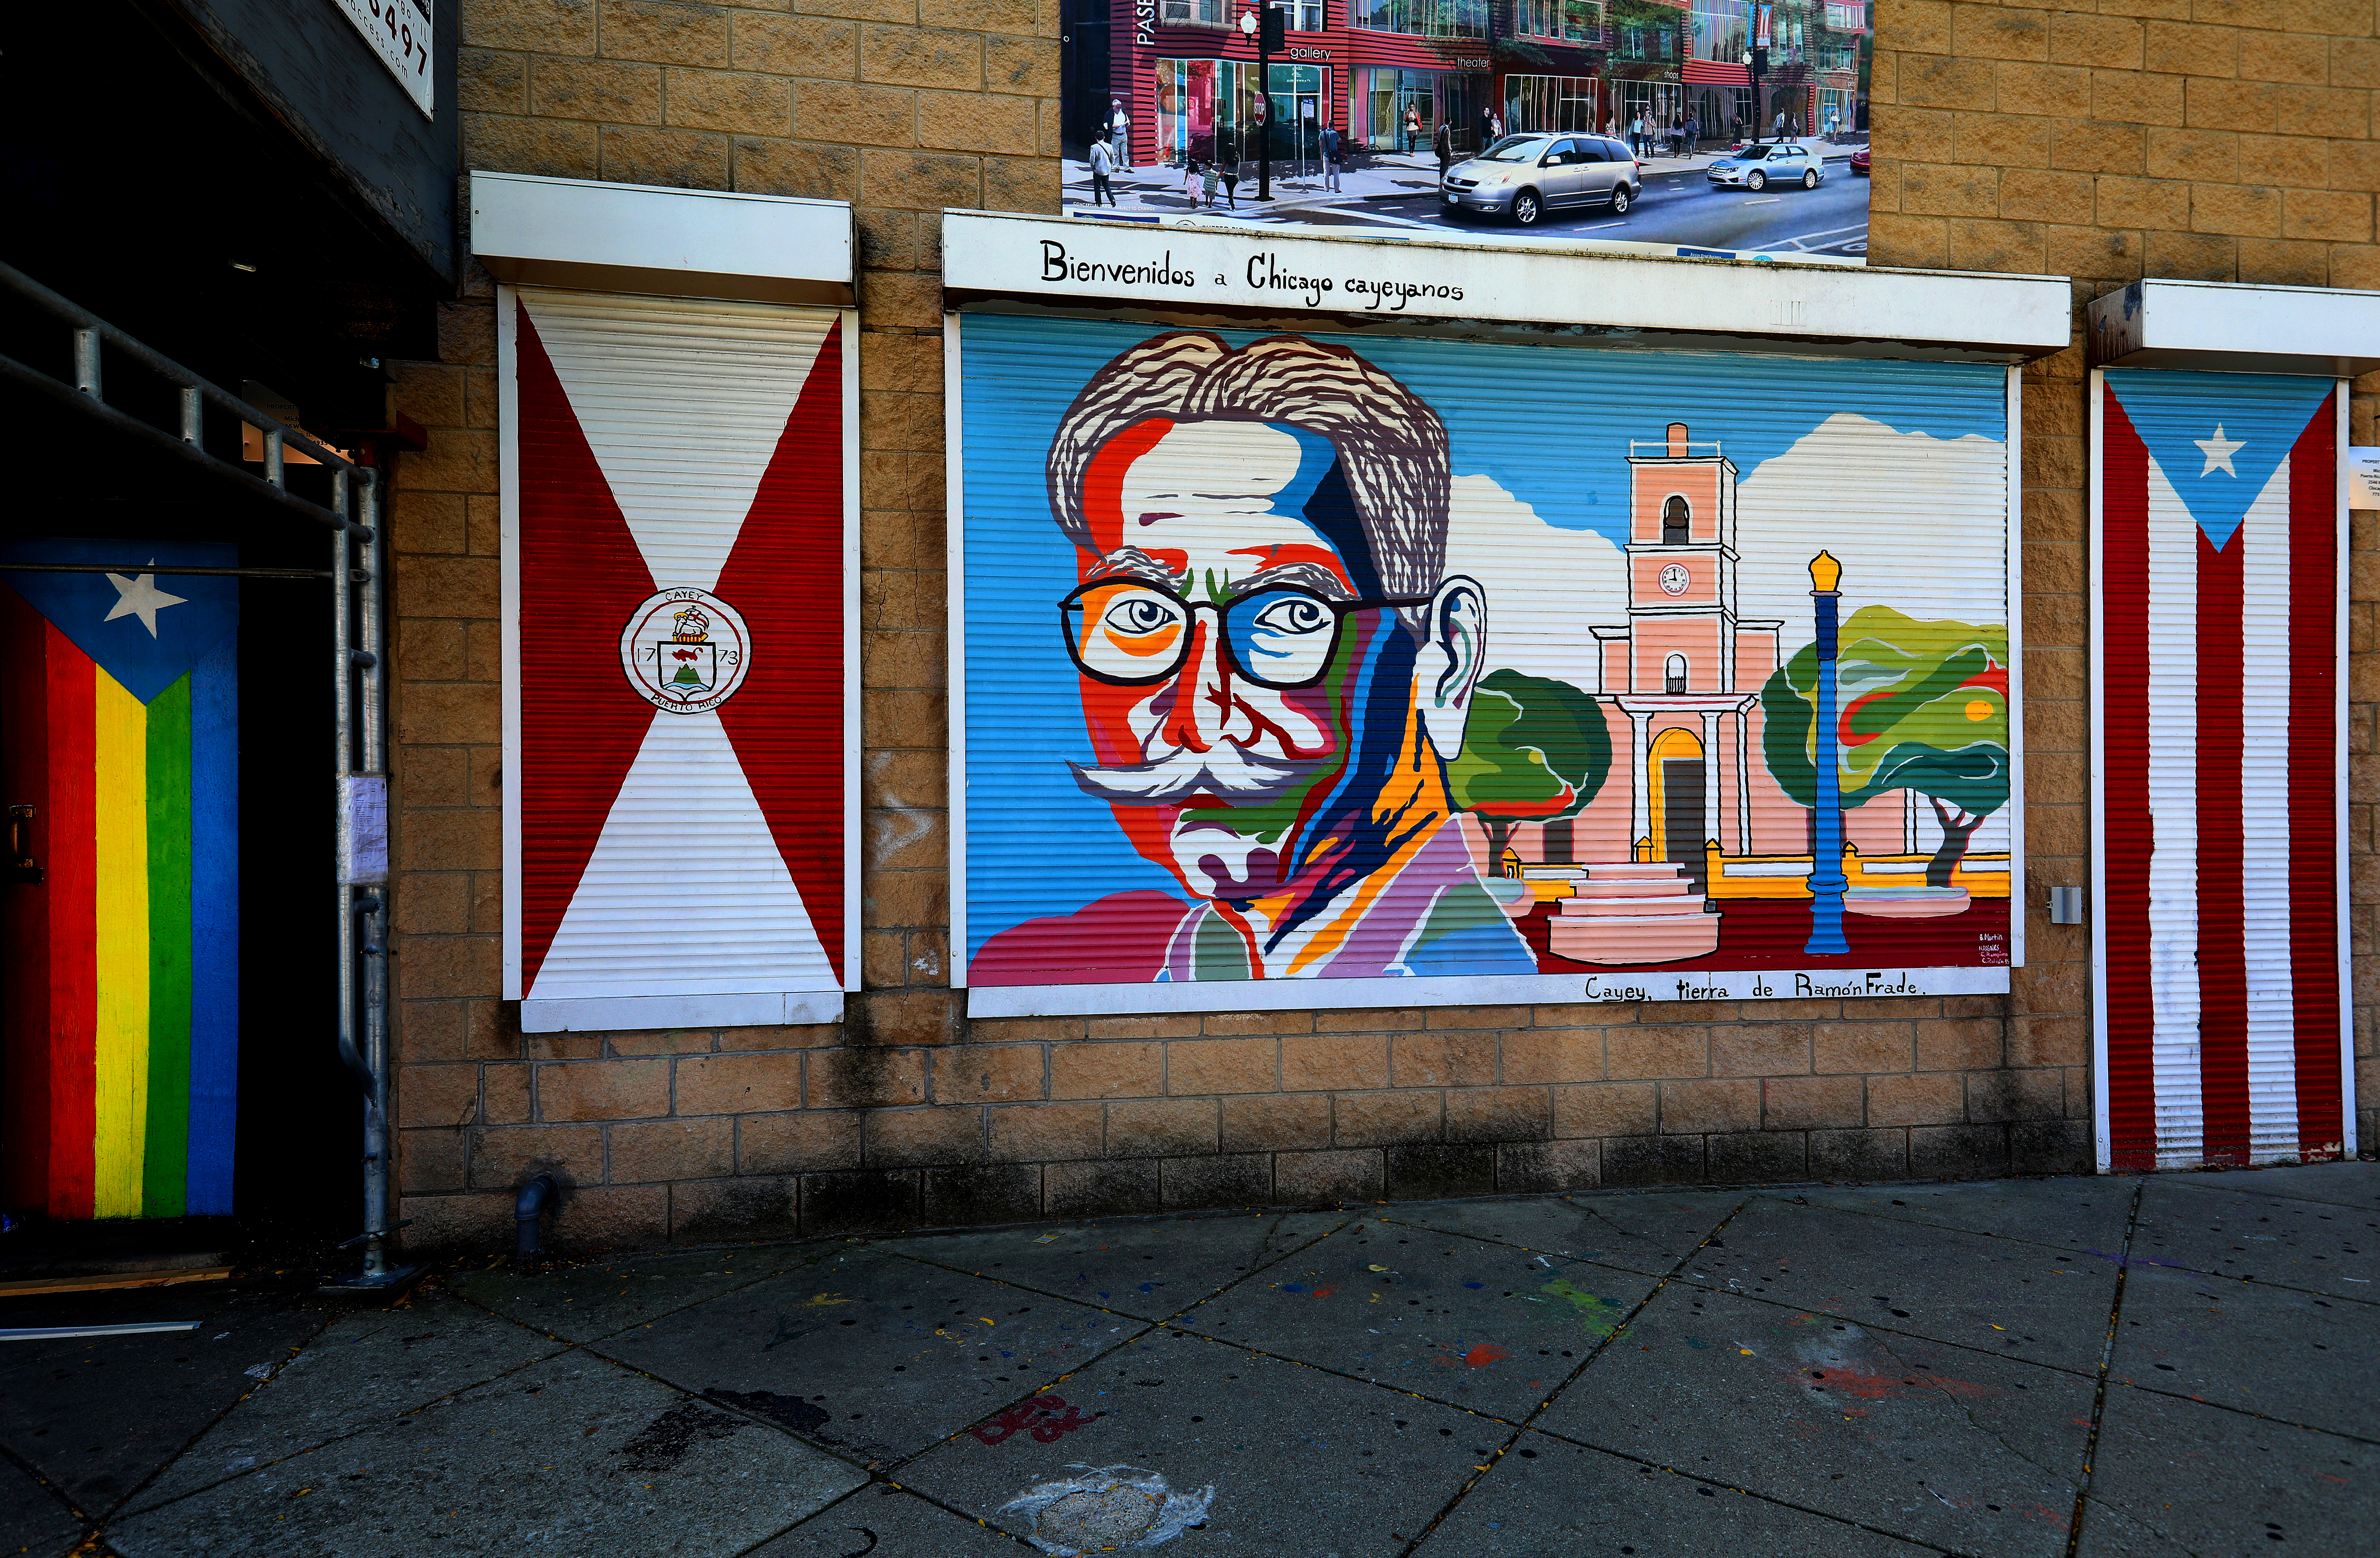 Colorful murals painted on the side of a building - a mans face with many colors included, a building, and a Puerto Rican flag.